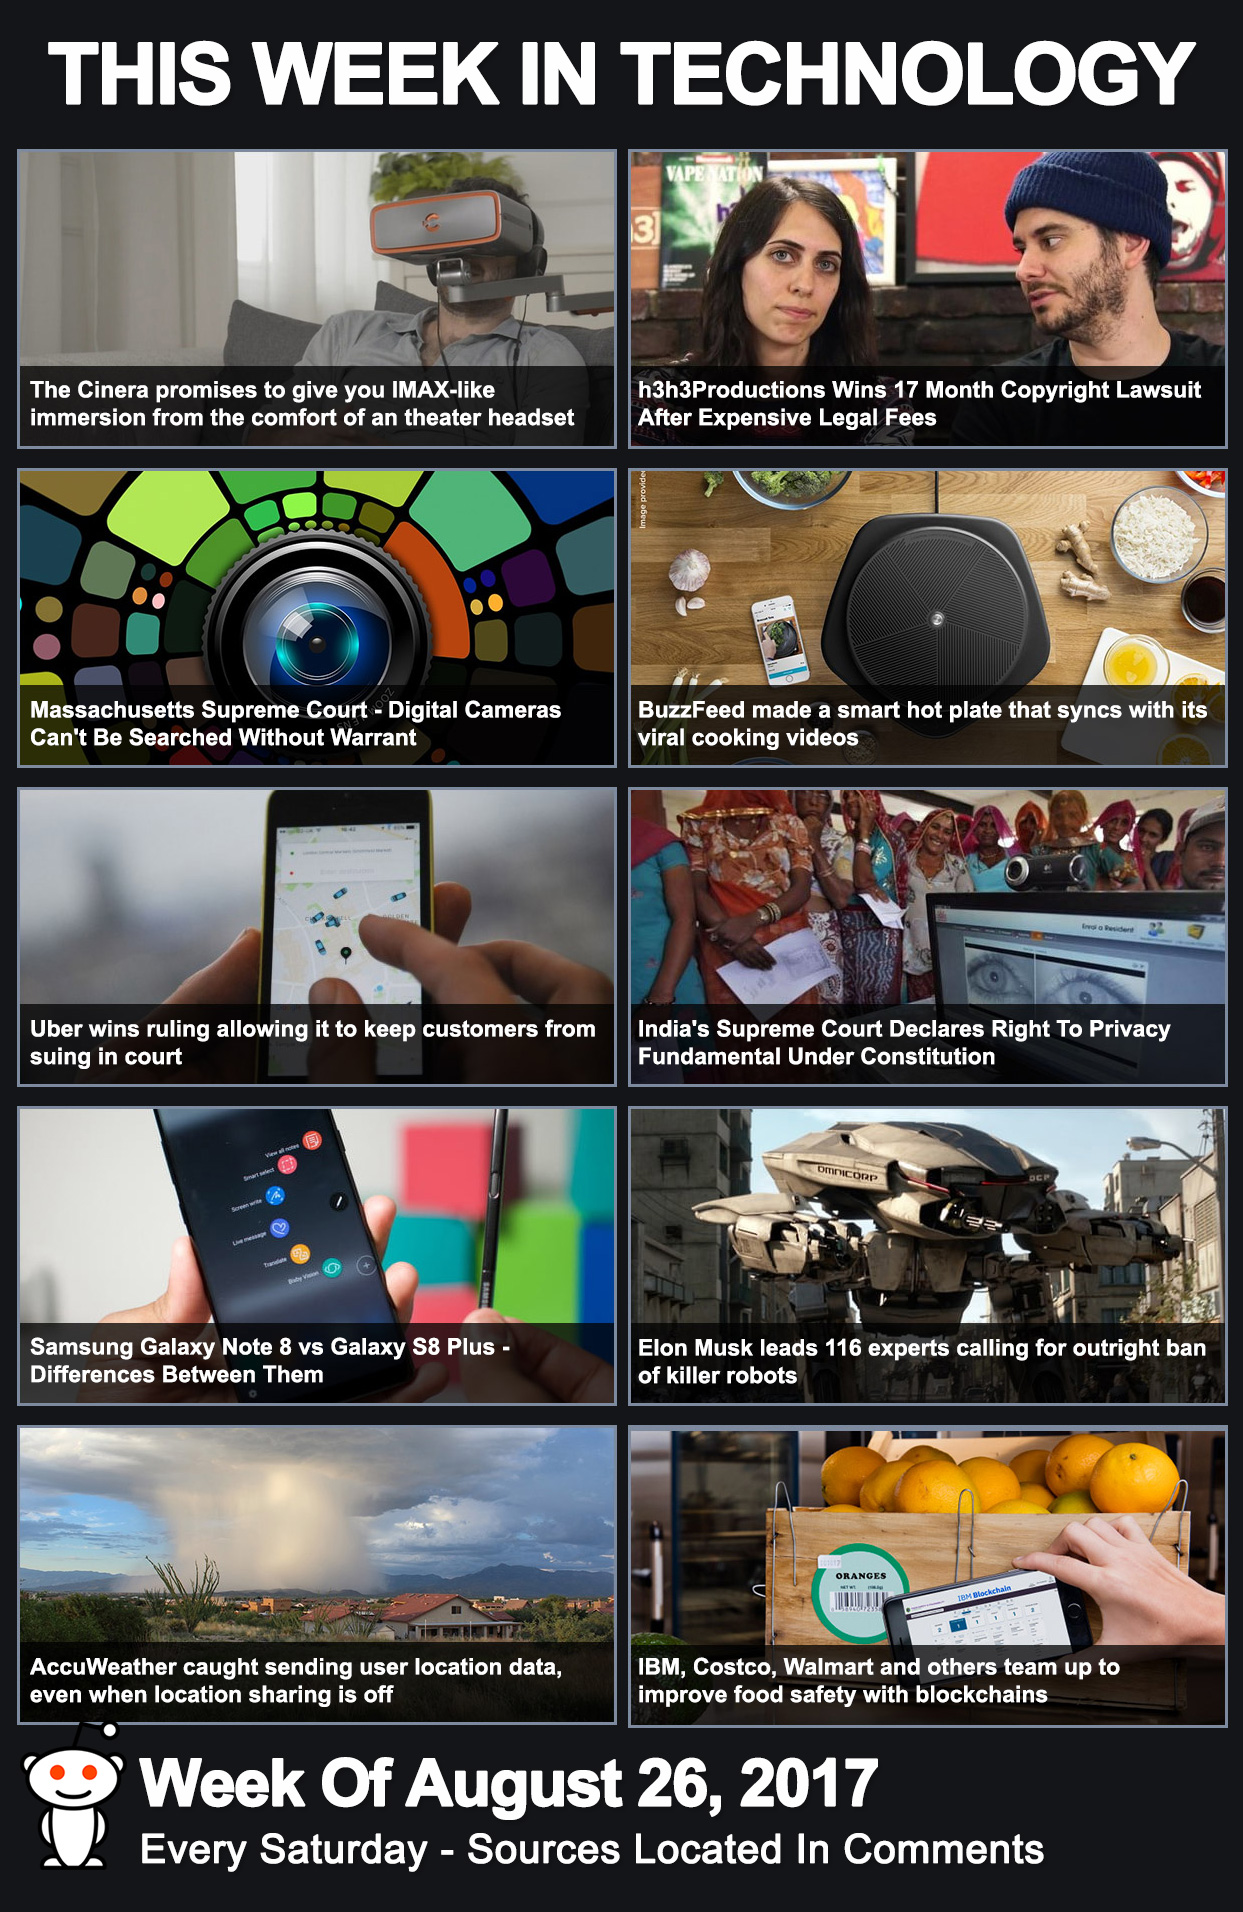 This Week In Technology - August 26, 2017